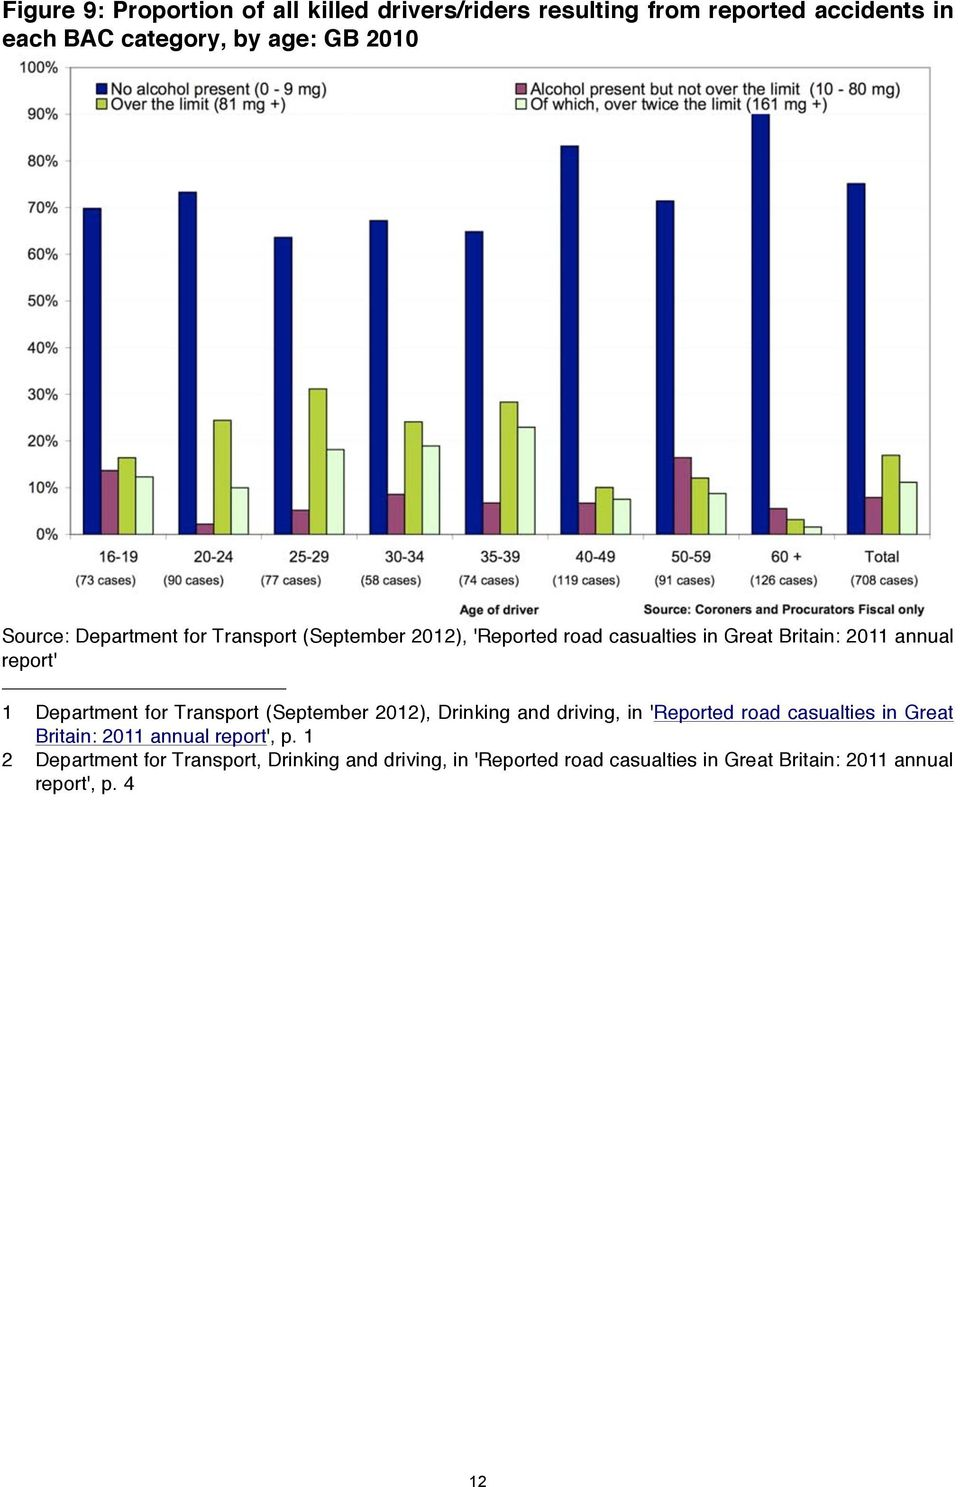 Department for Transport (September 2012), Drinking and driving, in 'Reported road casualties in Great Britain: 2011 annual